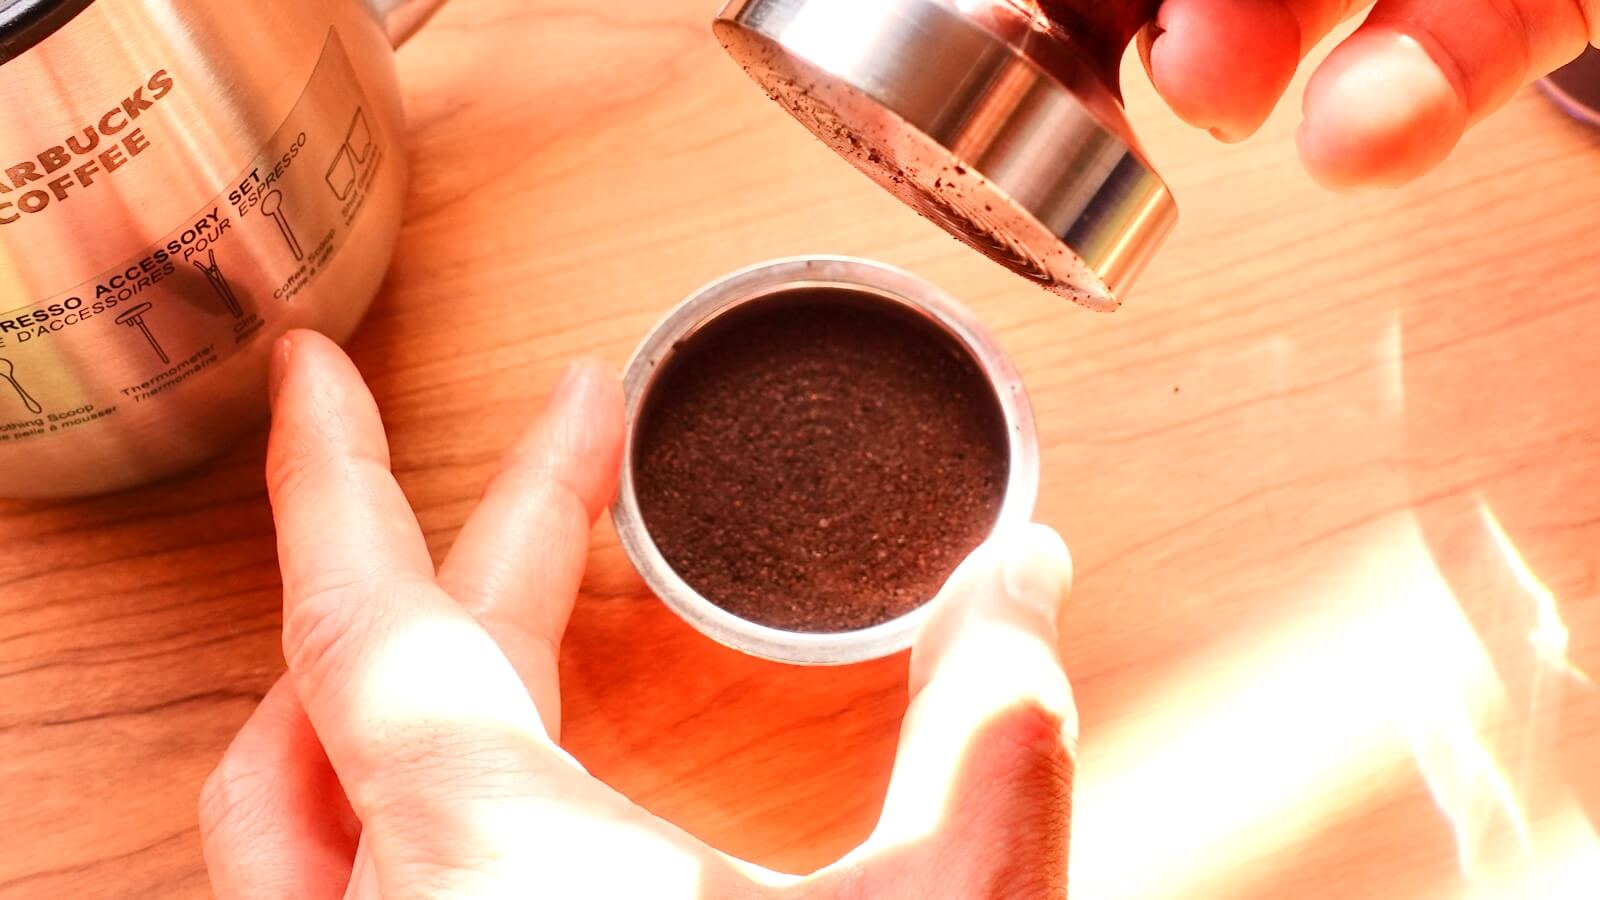 Photo after tamping coffee powder spread in a filter basket